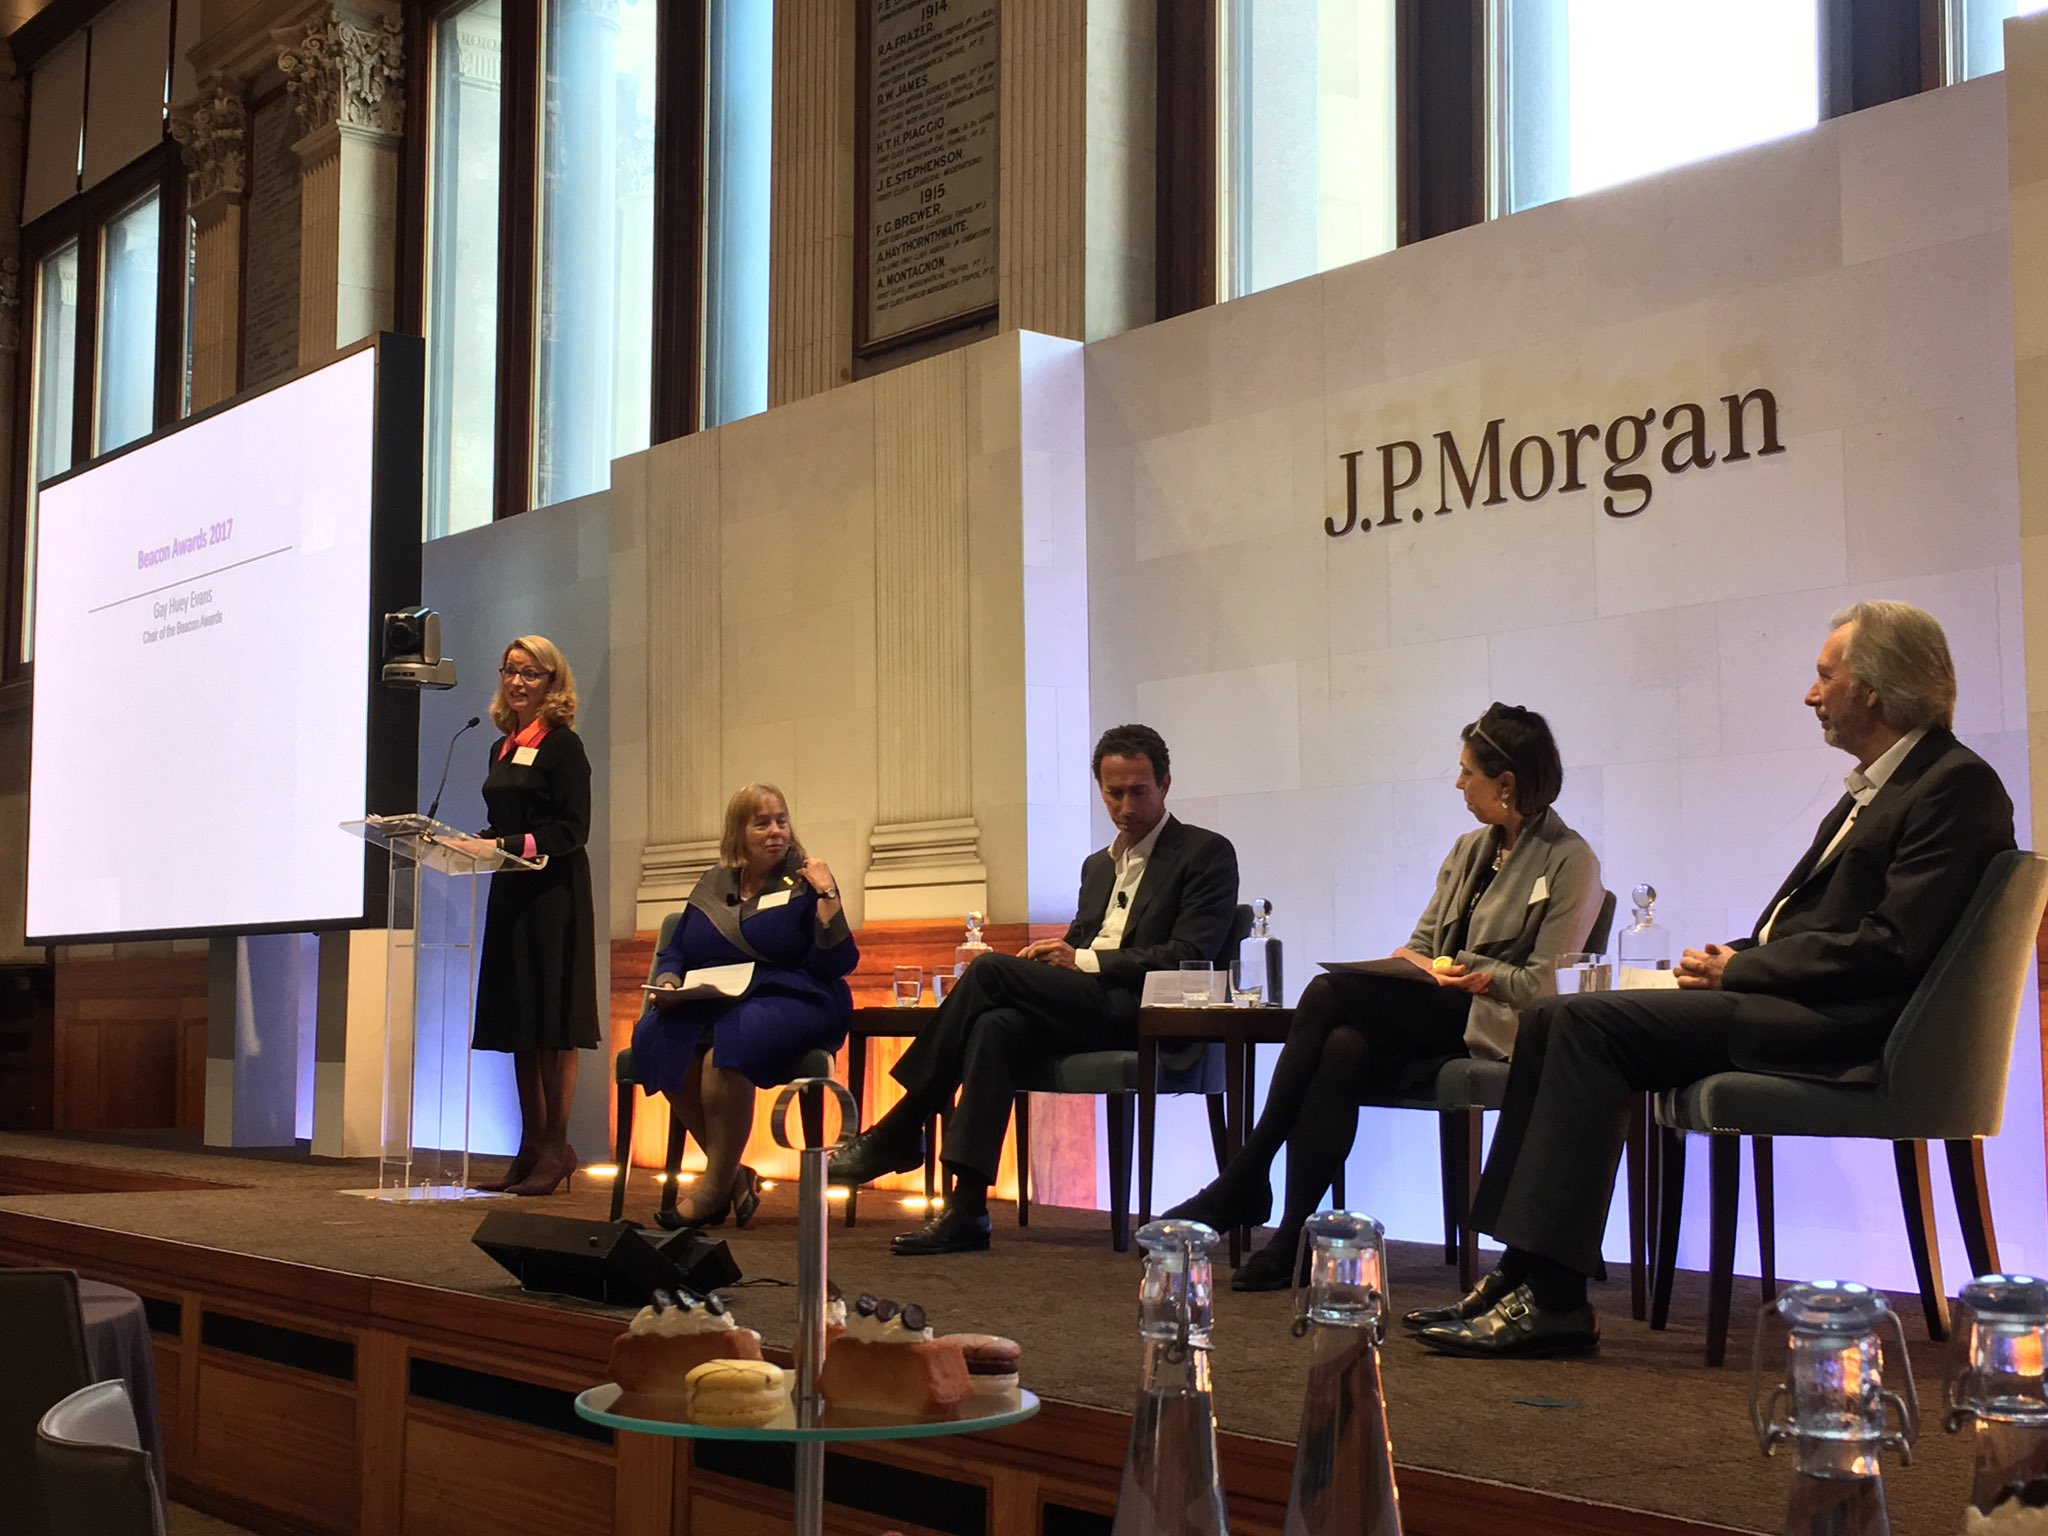 Great line up of speakers @BeaconAwards discussing the power of philanthropy @jpmorgan https://t.co/l5eb6eats8